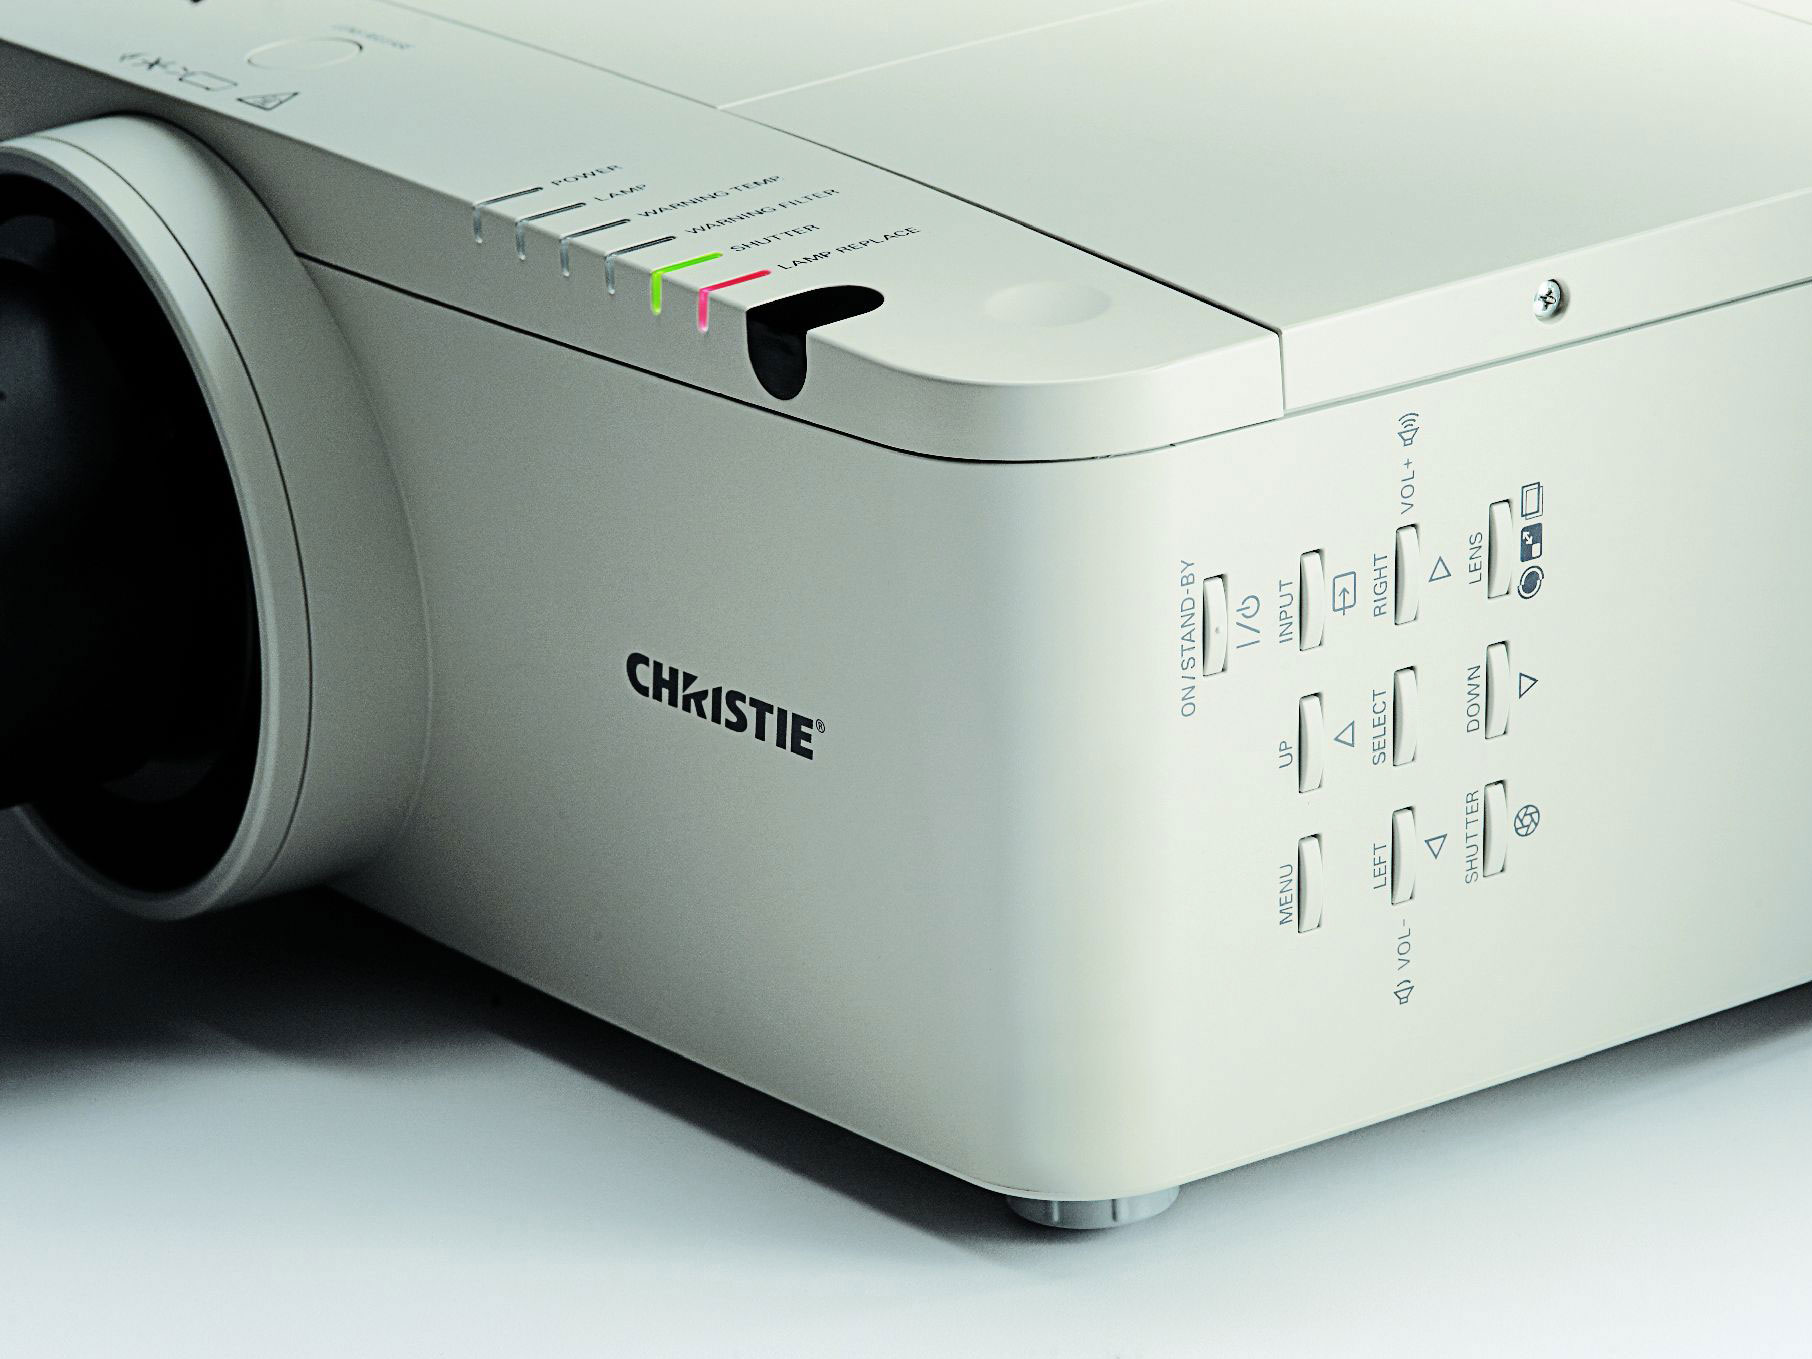 /globalassets/.catalog/products/images/christie-lw555/gallery/christie-lw555-lcd-digital-projector-image9.jpg